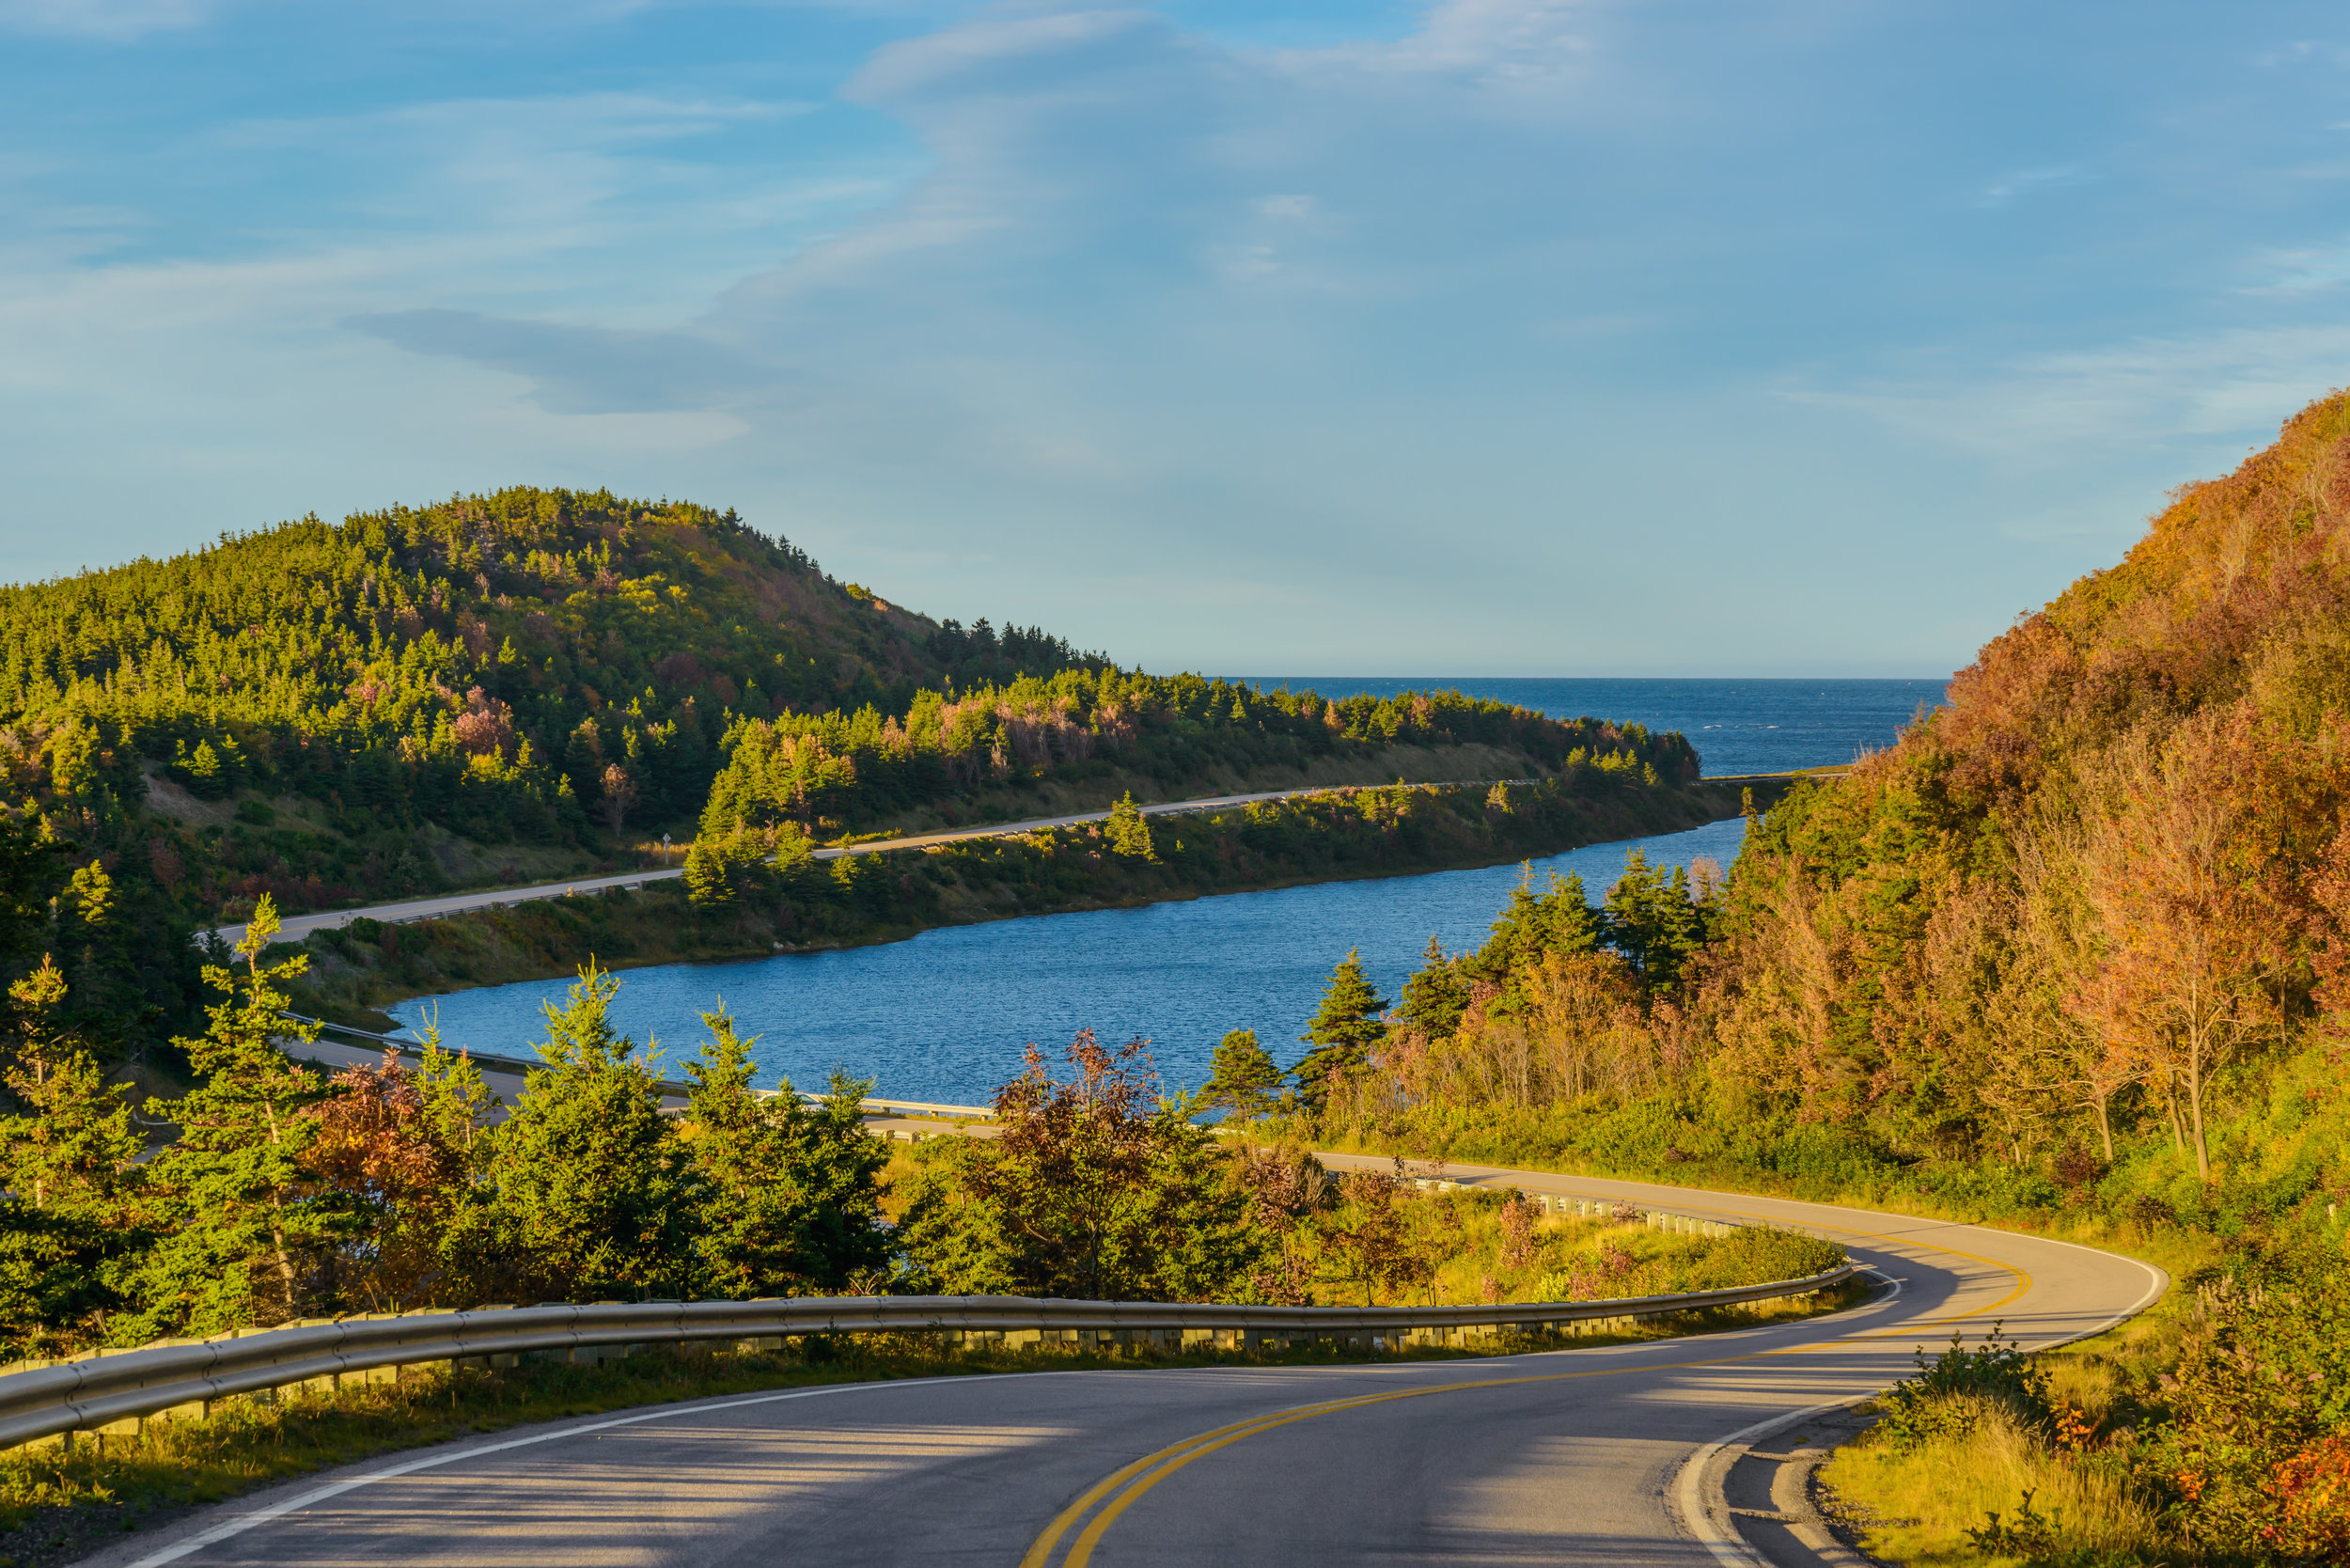 Cabot-Trail-Highway-622324166_6000x4004.jpeg